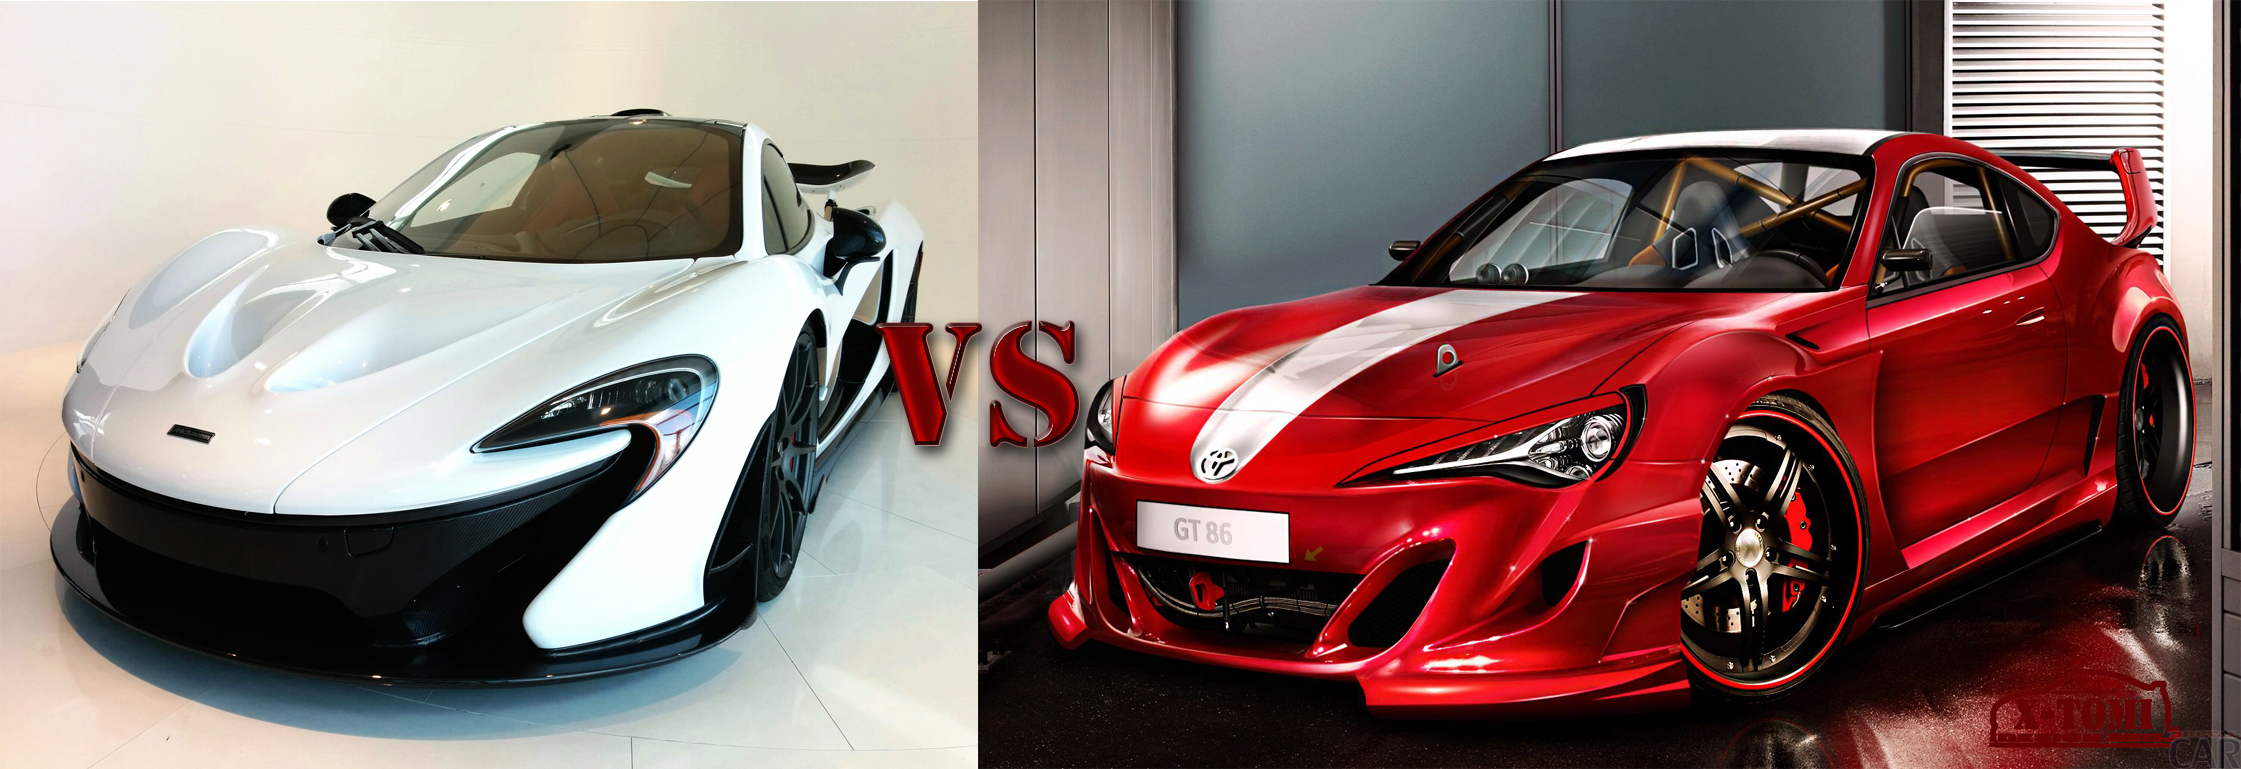 If You Have Loads Of Cash Would You Rather Own A Supercar Or Buy